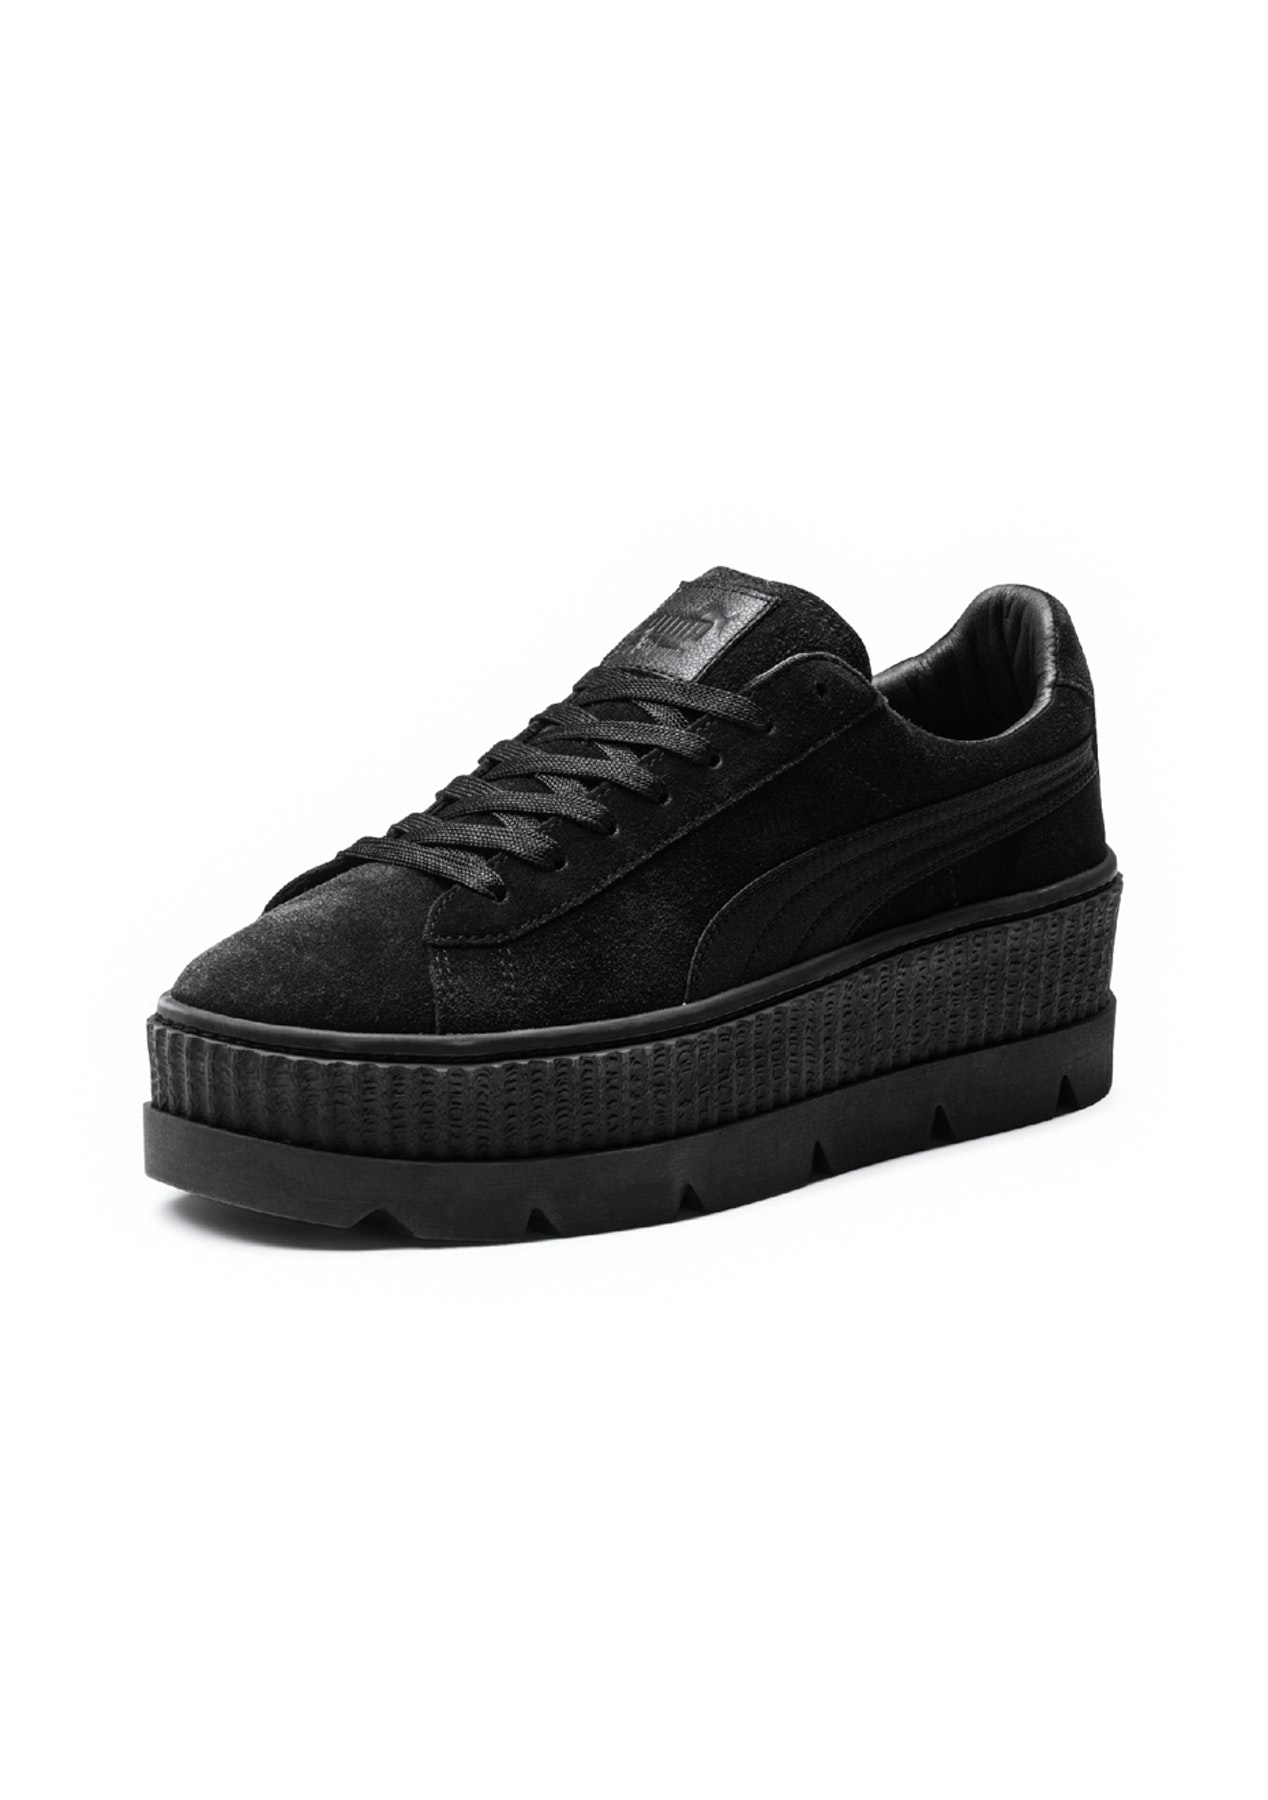 new photos 2afa2 9e840 FENTY Suede Cleated Creeper Womens